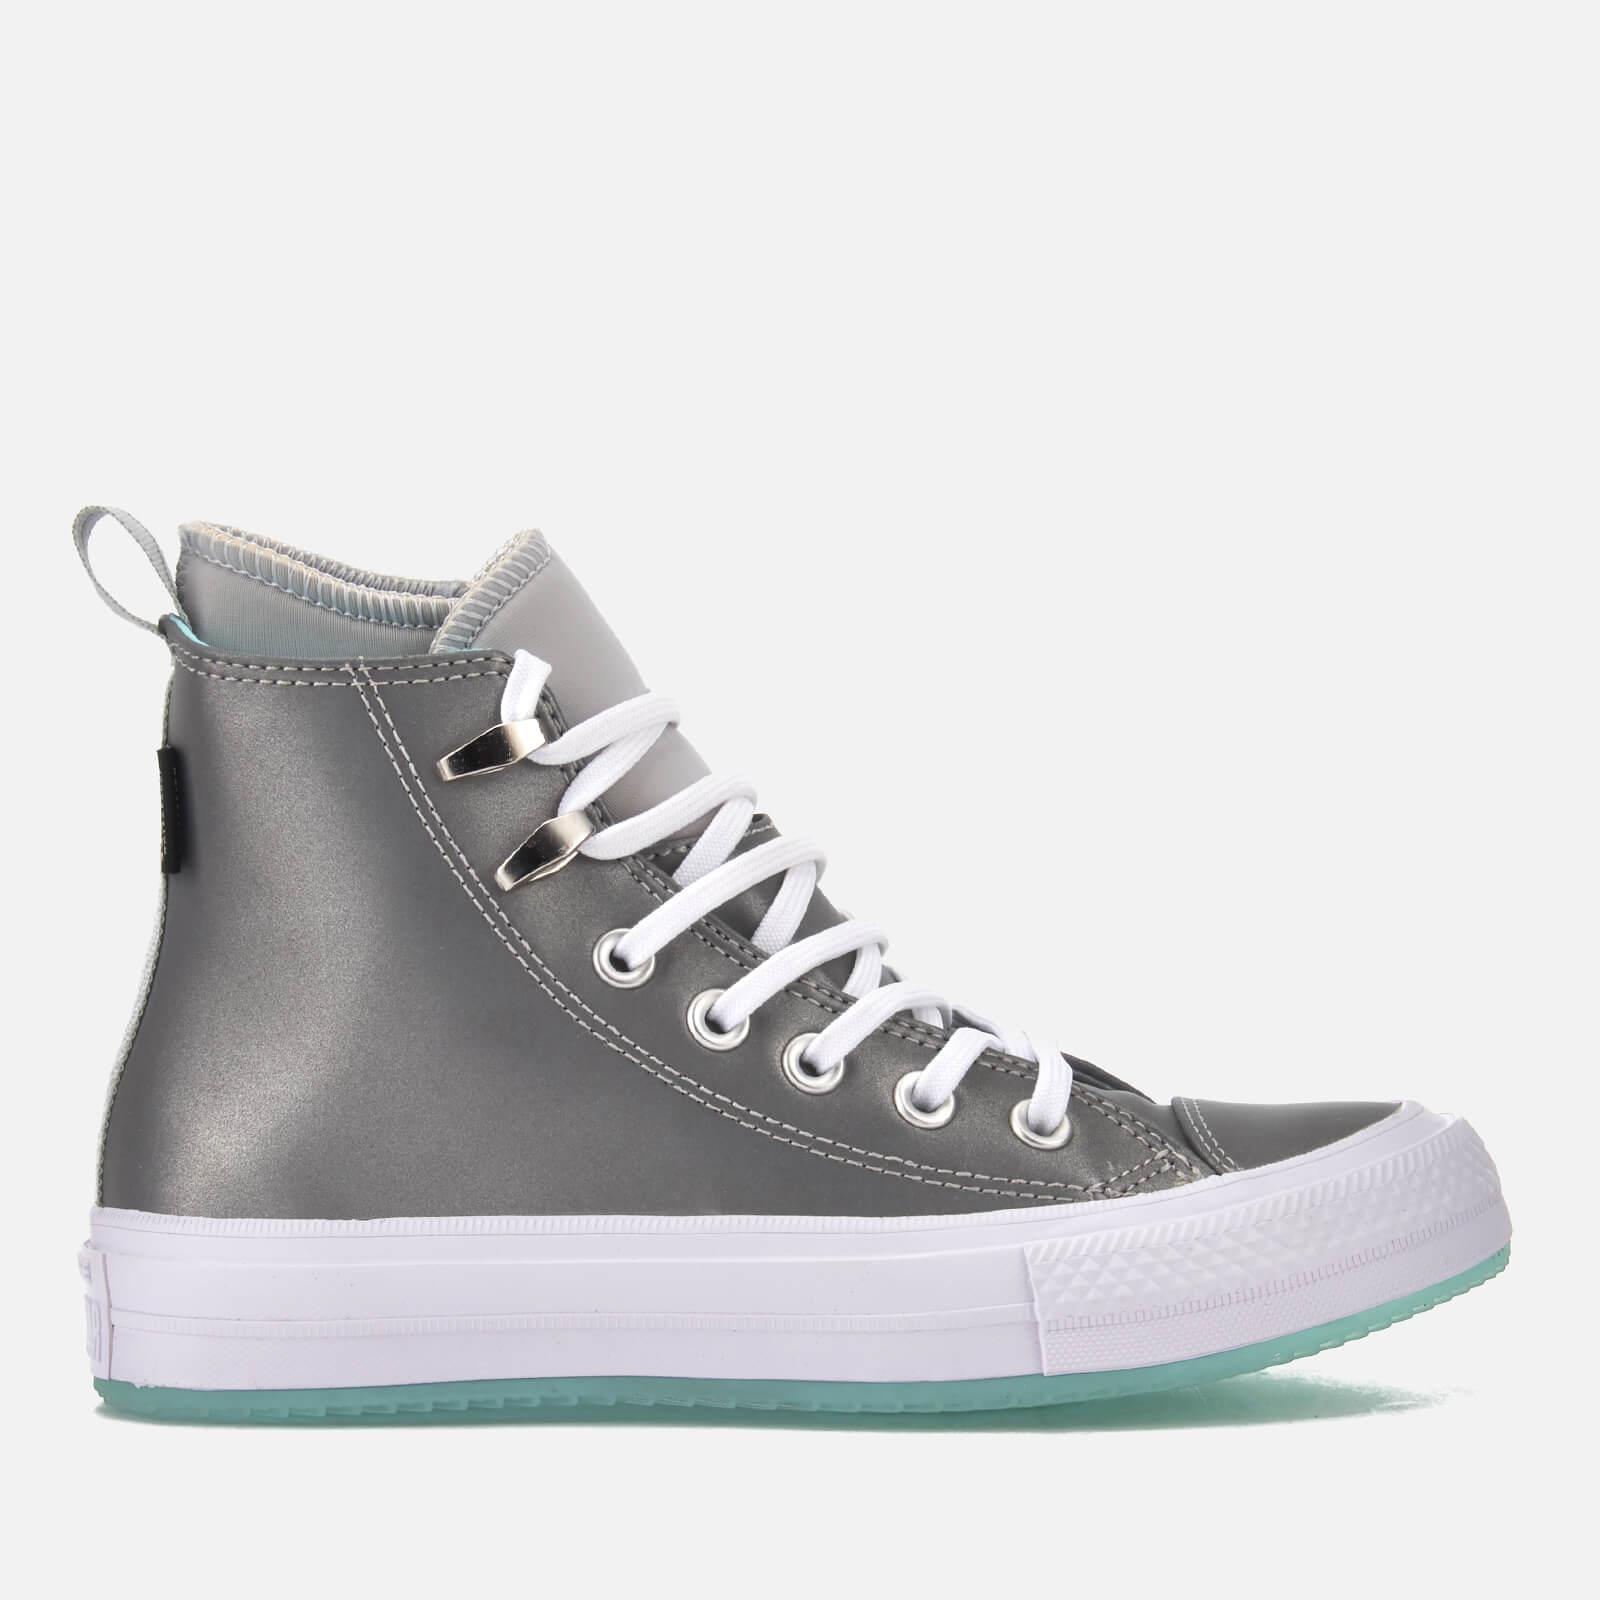 3c2d998ec48 Lyst - Converse Chuck Taylor All Star Waterproof Boots in Gray